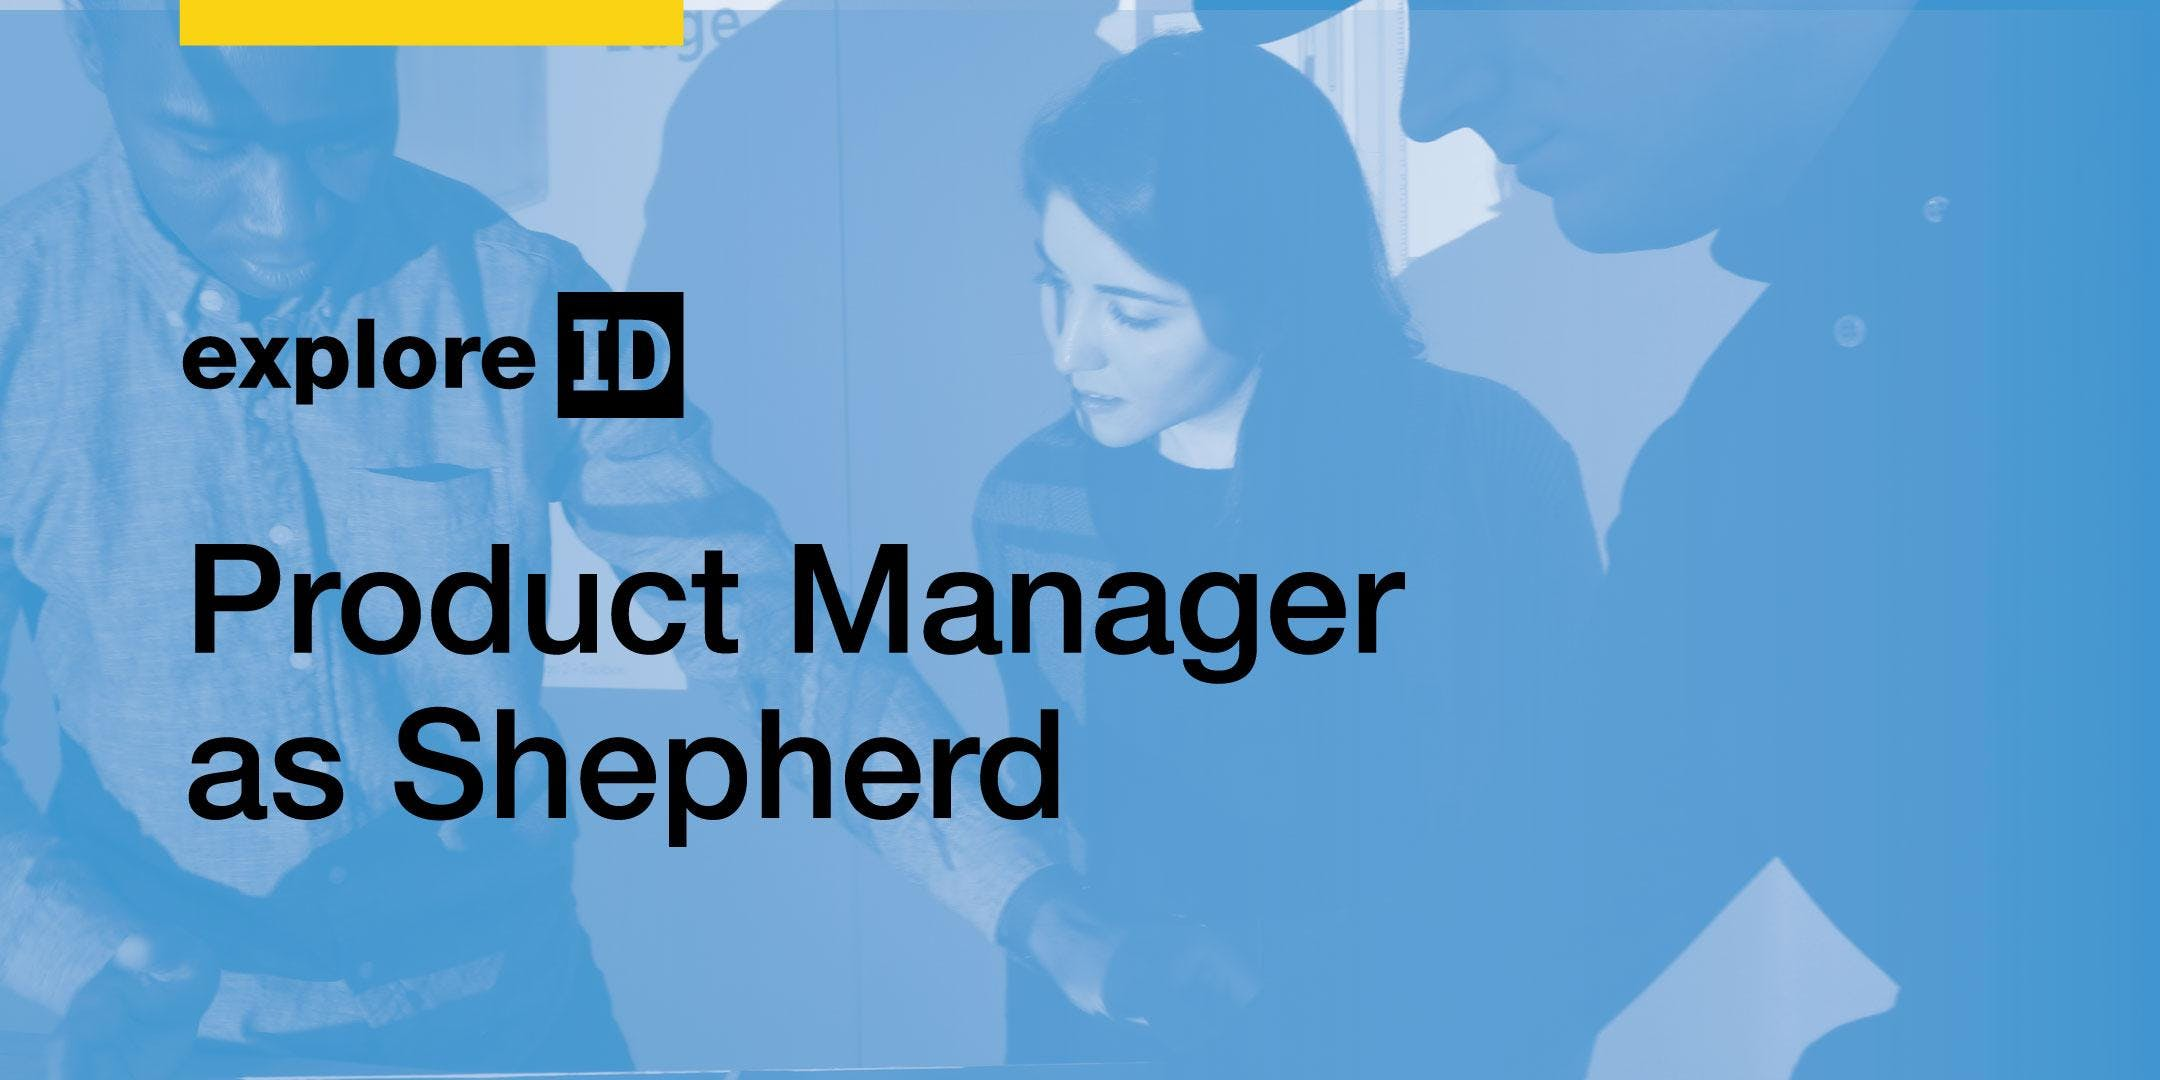 exploreID: Product Manager as Shepherd